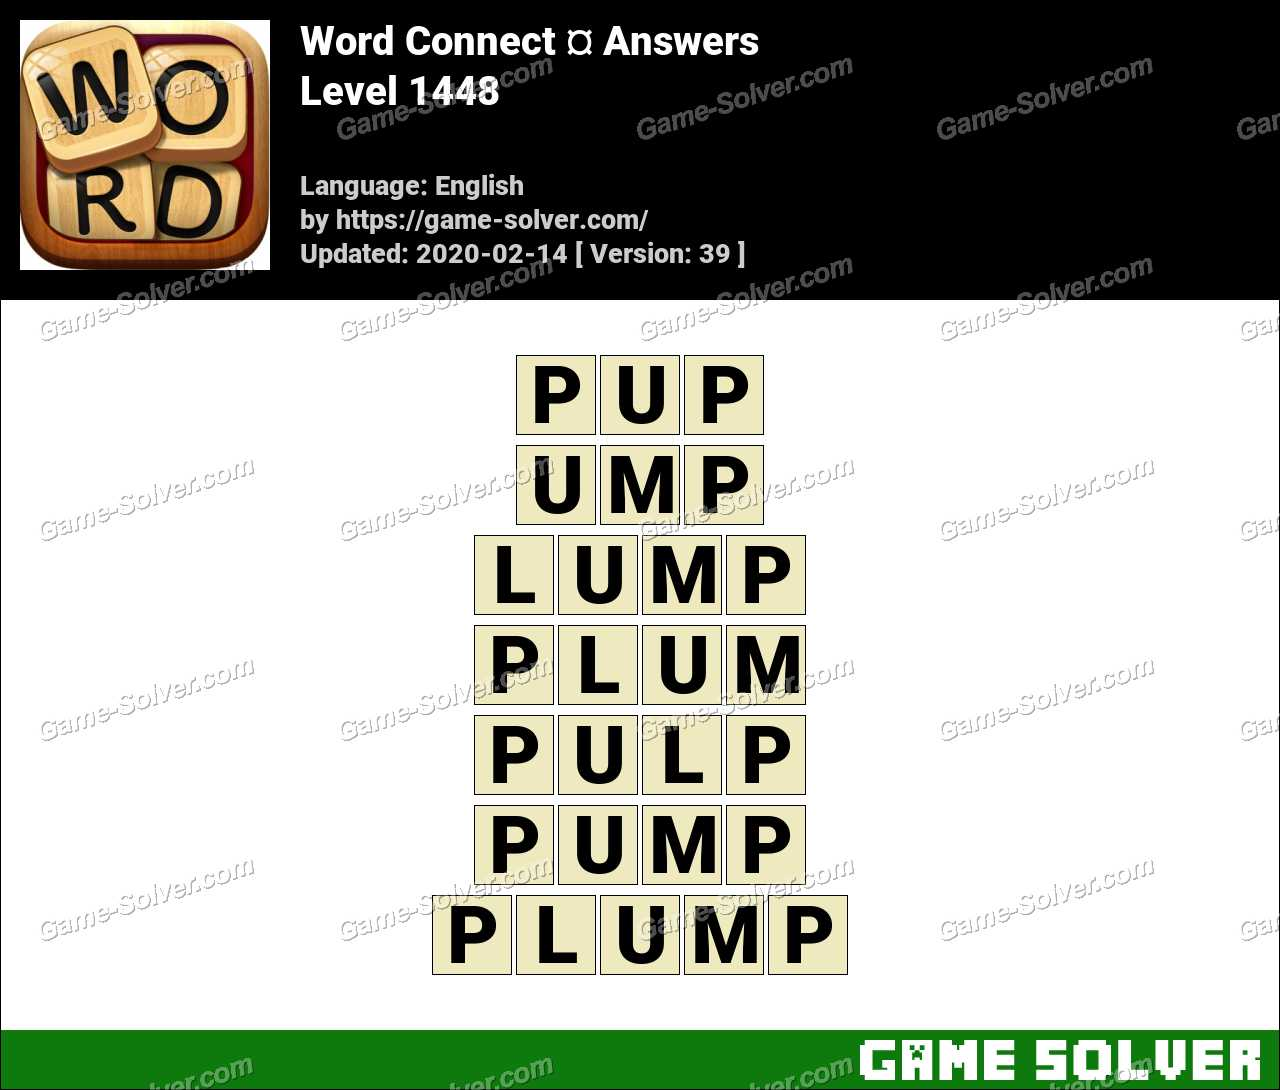 Word Connect Level 1448 Answers